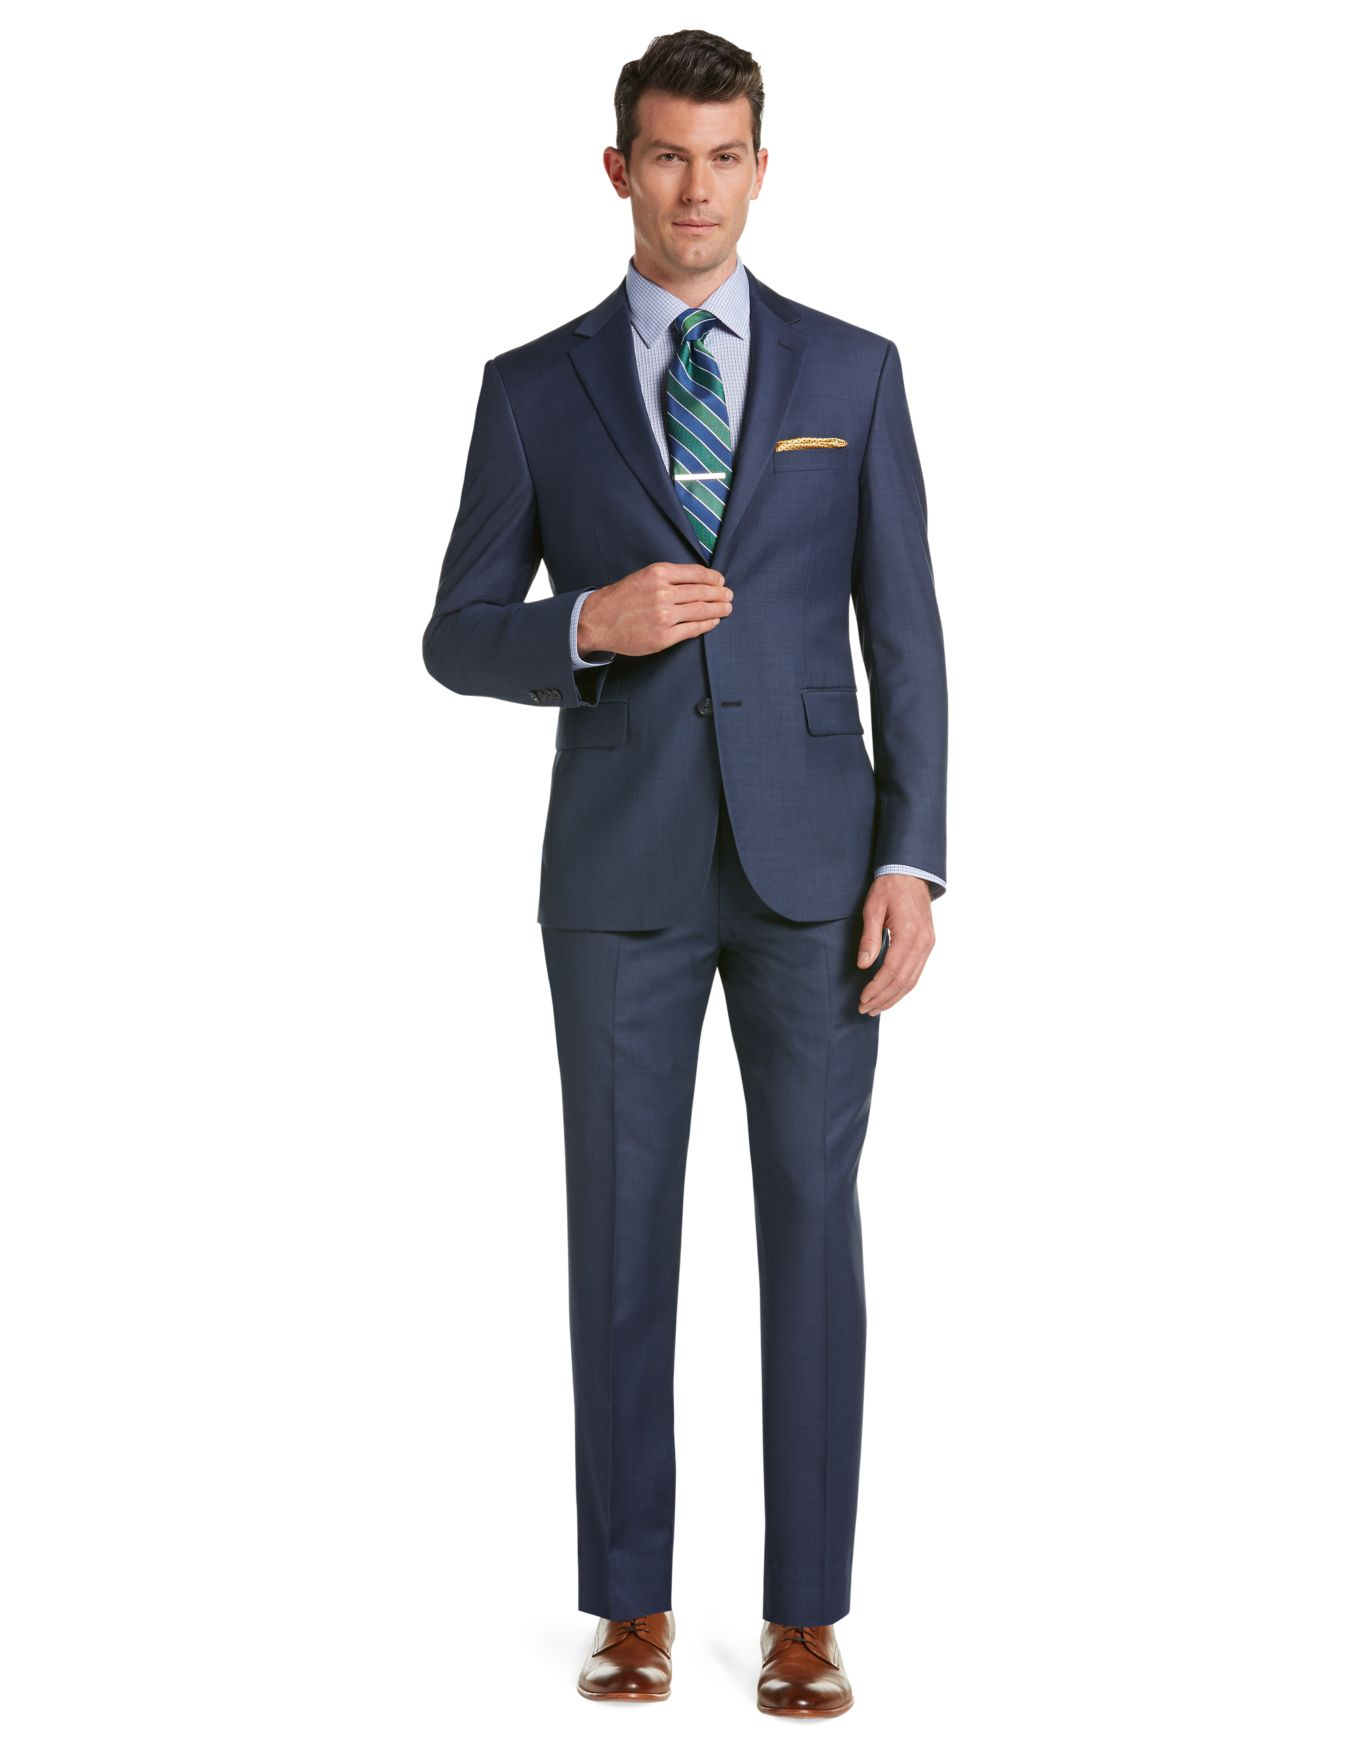 Sharkskin Suit - Tailored Fit Traveler Suit Collection   JoS A. Bank